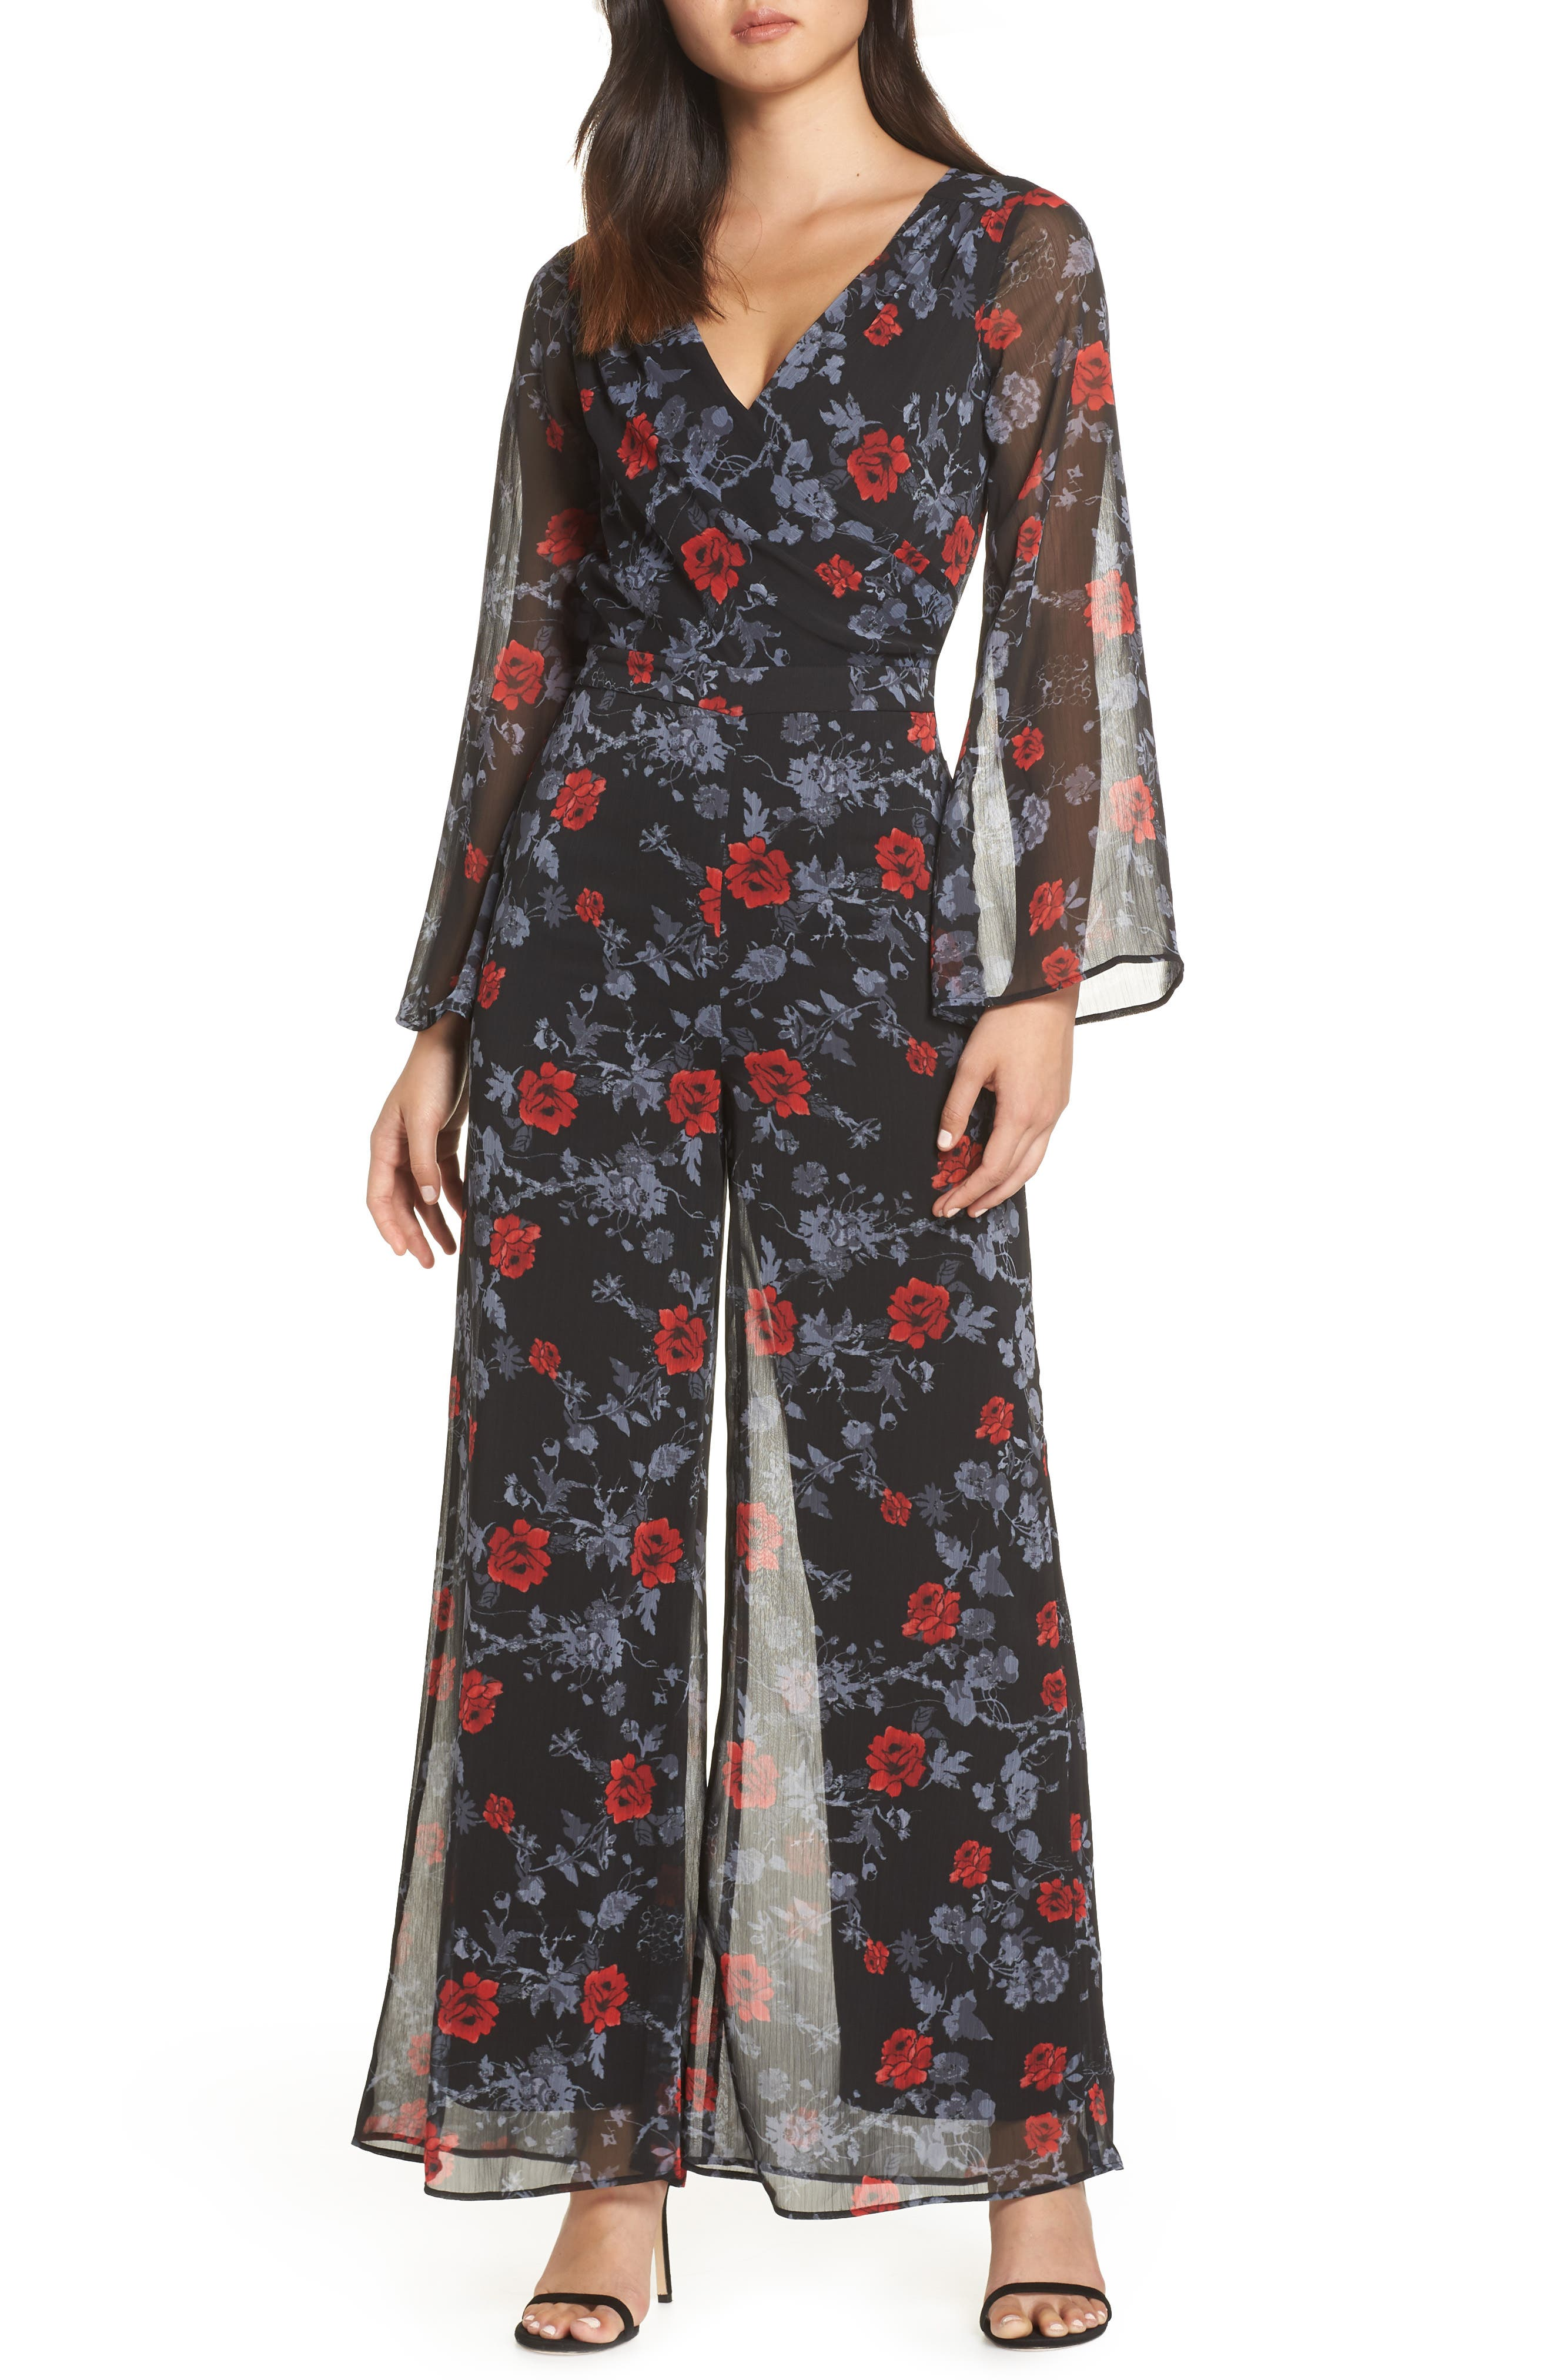 ALI & JAY Only Wish Floral Jumpsuit in Scarlet Roses